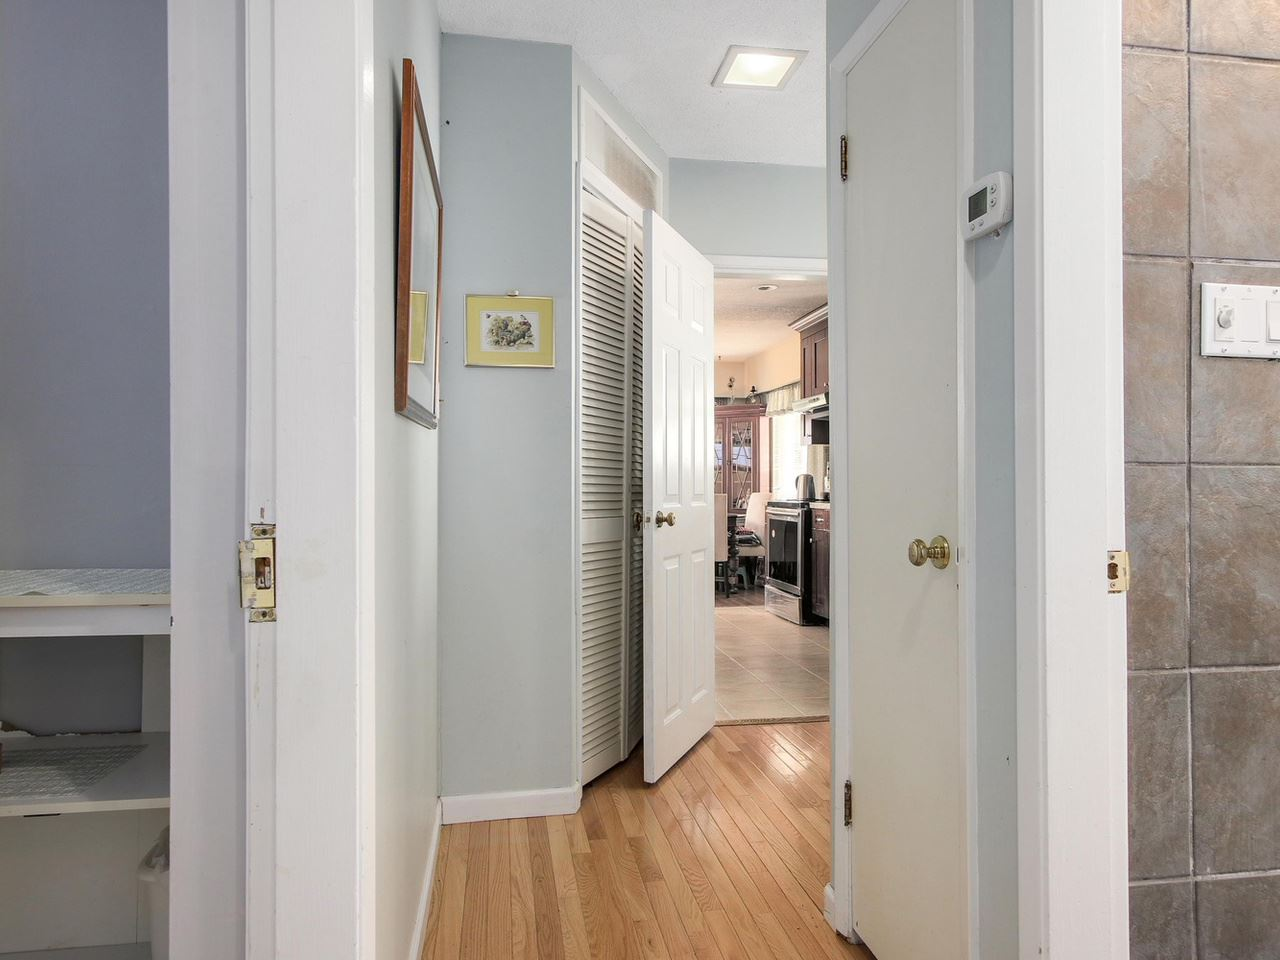 Photo 9: Photos: 1520 MACGOWAN Avenue in North Vancouver: Norgate House for sale : MLS® # R2137032